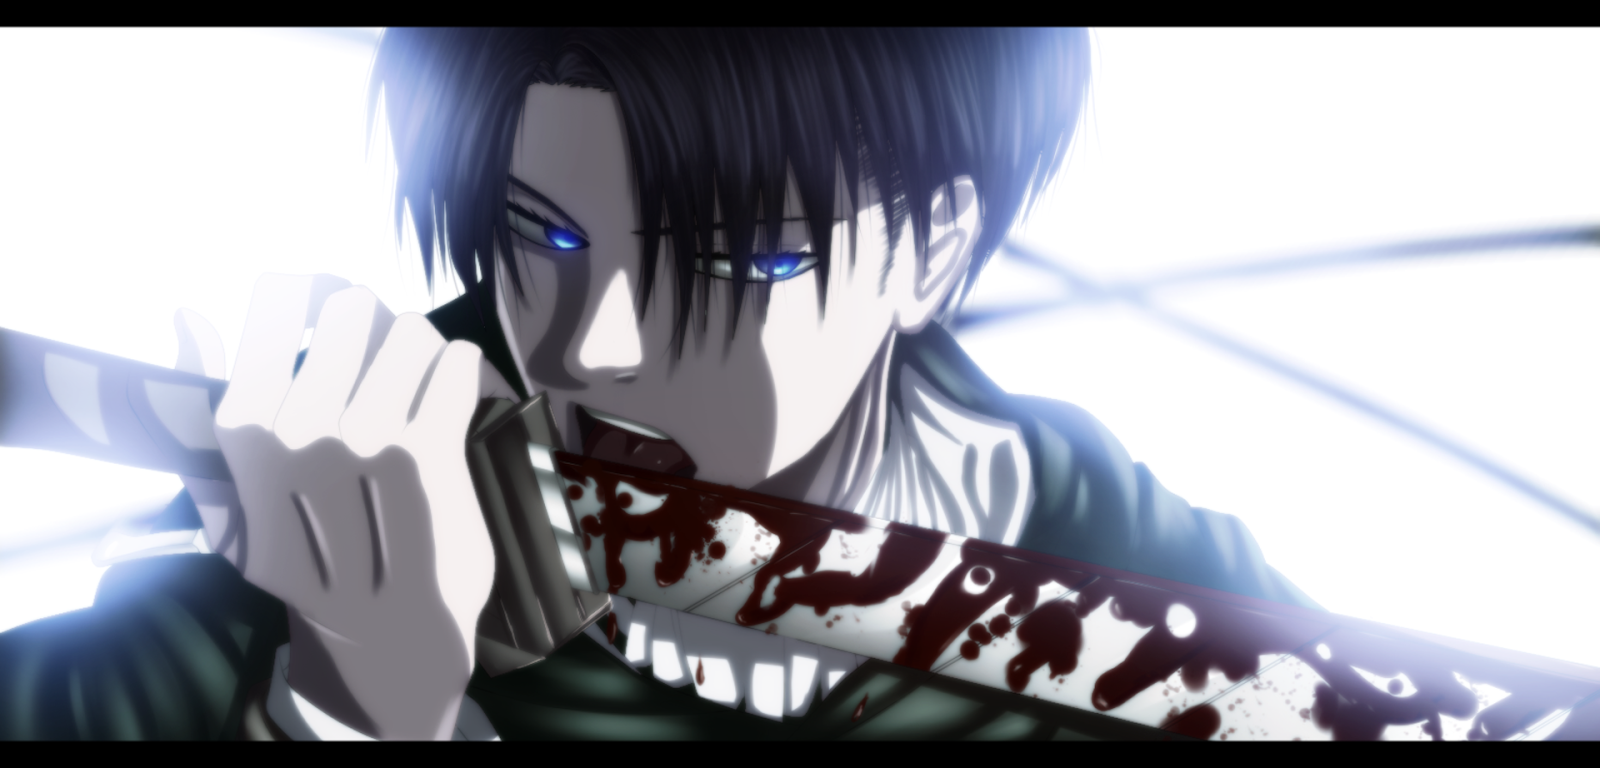 Levi Anime Blade Blood Stain HD Wallpaper Desktop PC Background 1352 1600x768